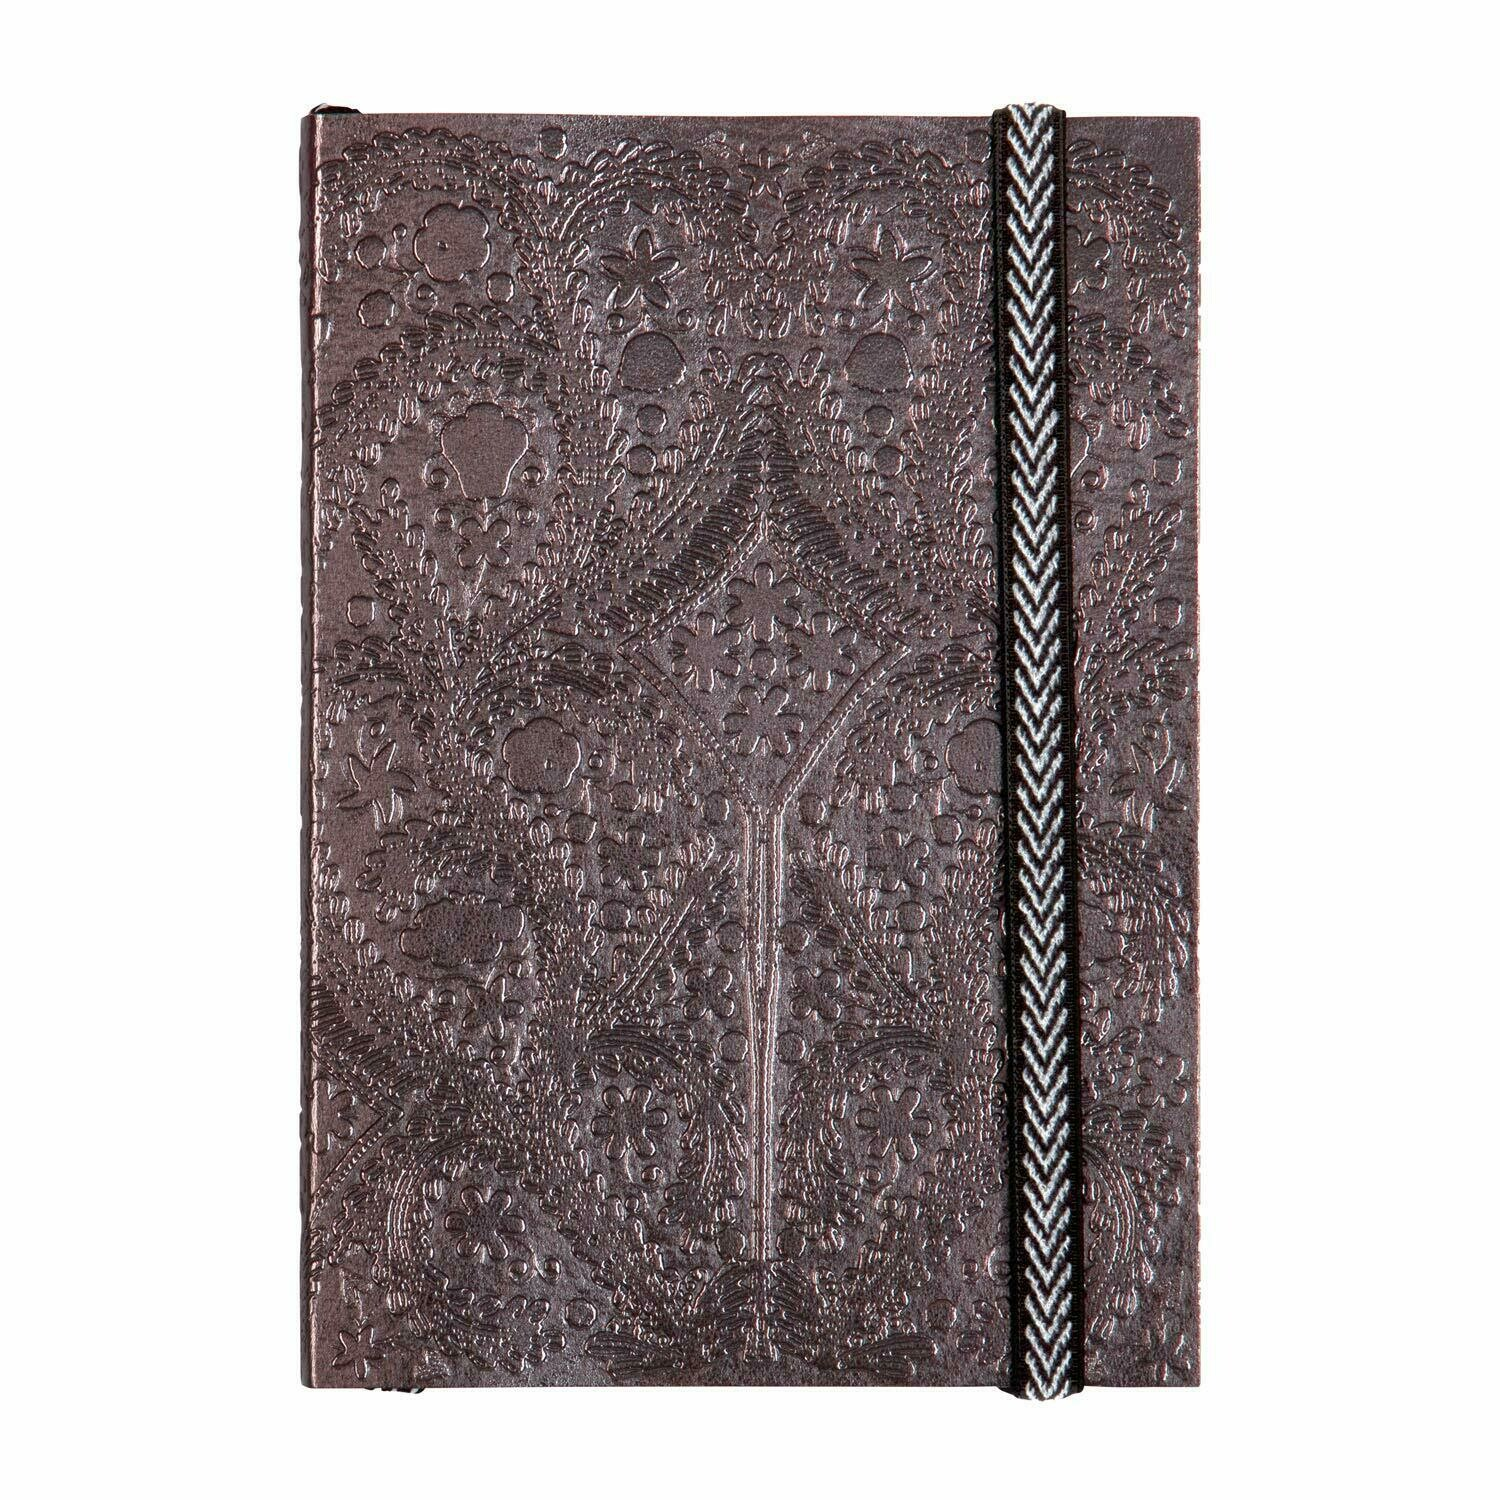 Paseo Onyx Notebook S